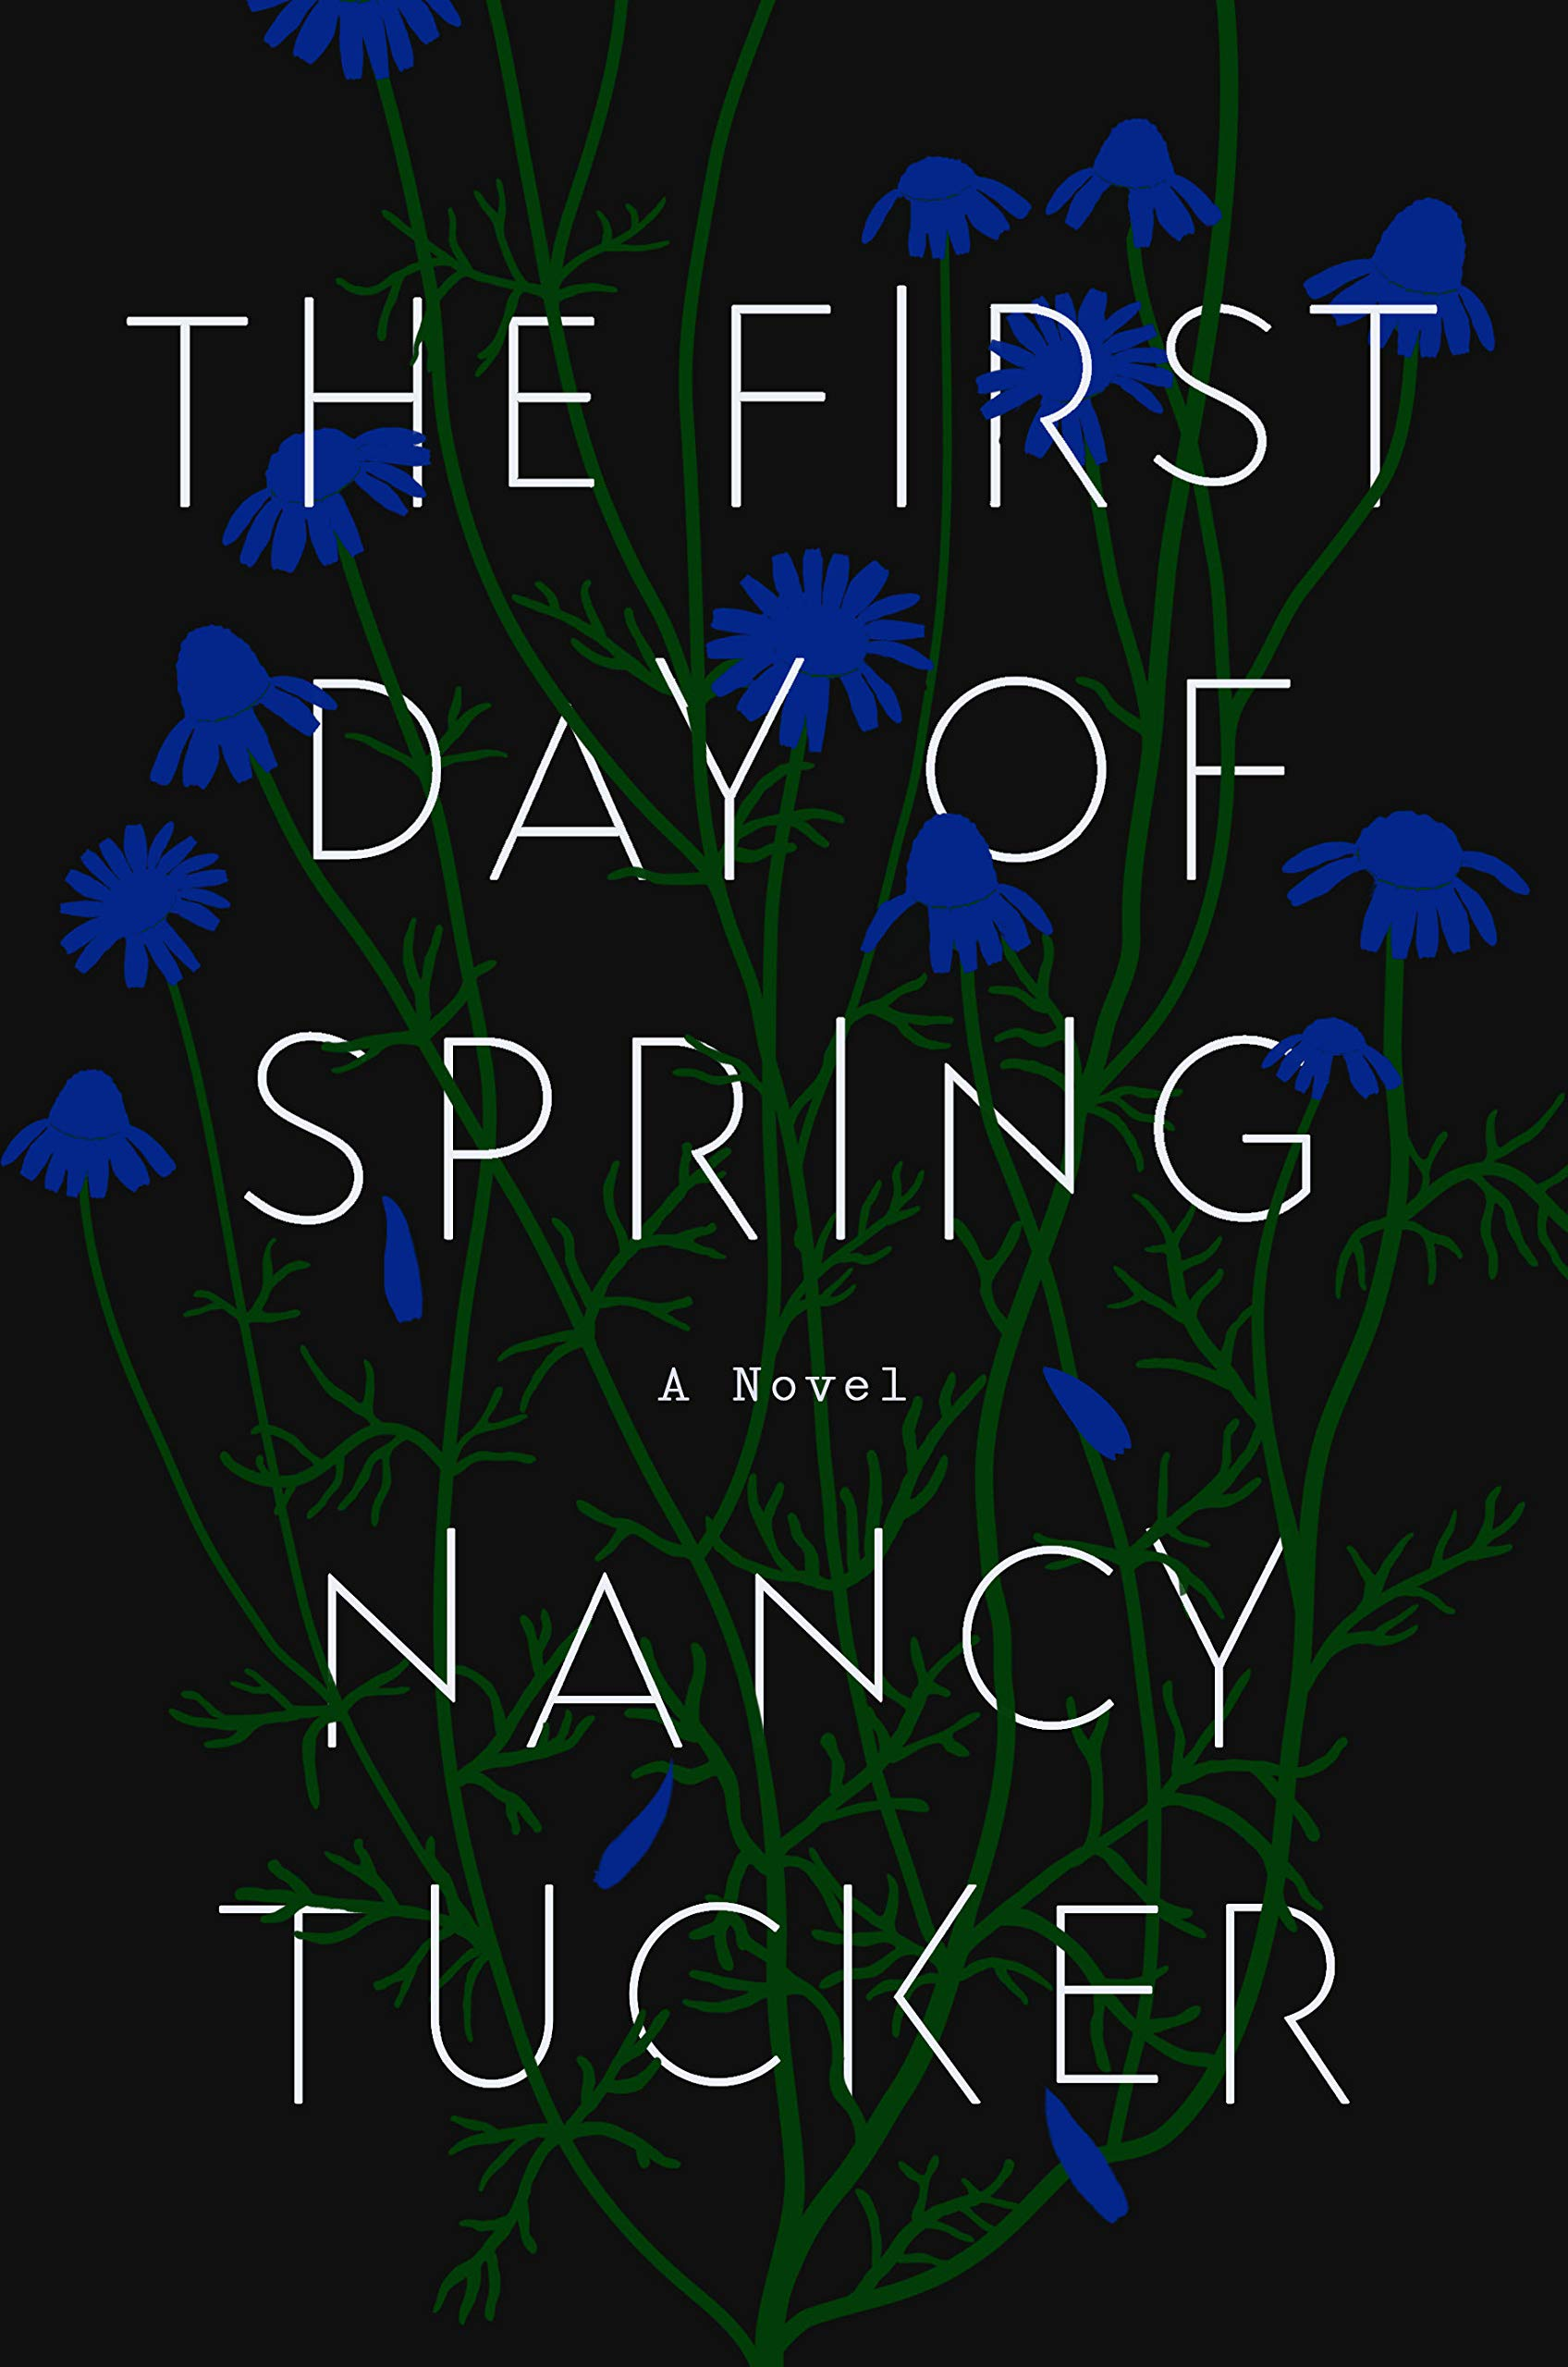 Amazon.com: The First Day of Spring: A Novel (9780593191569): Tucker,  Nancy: Books